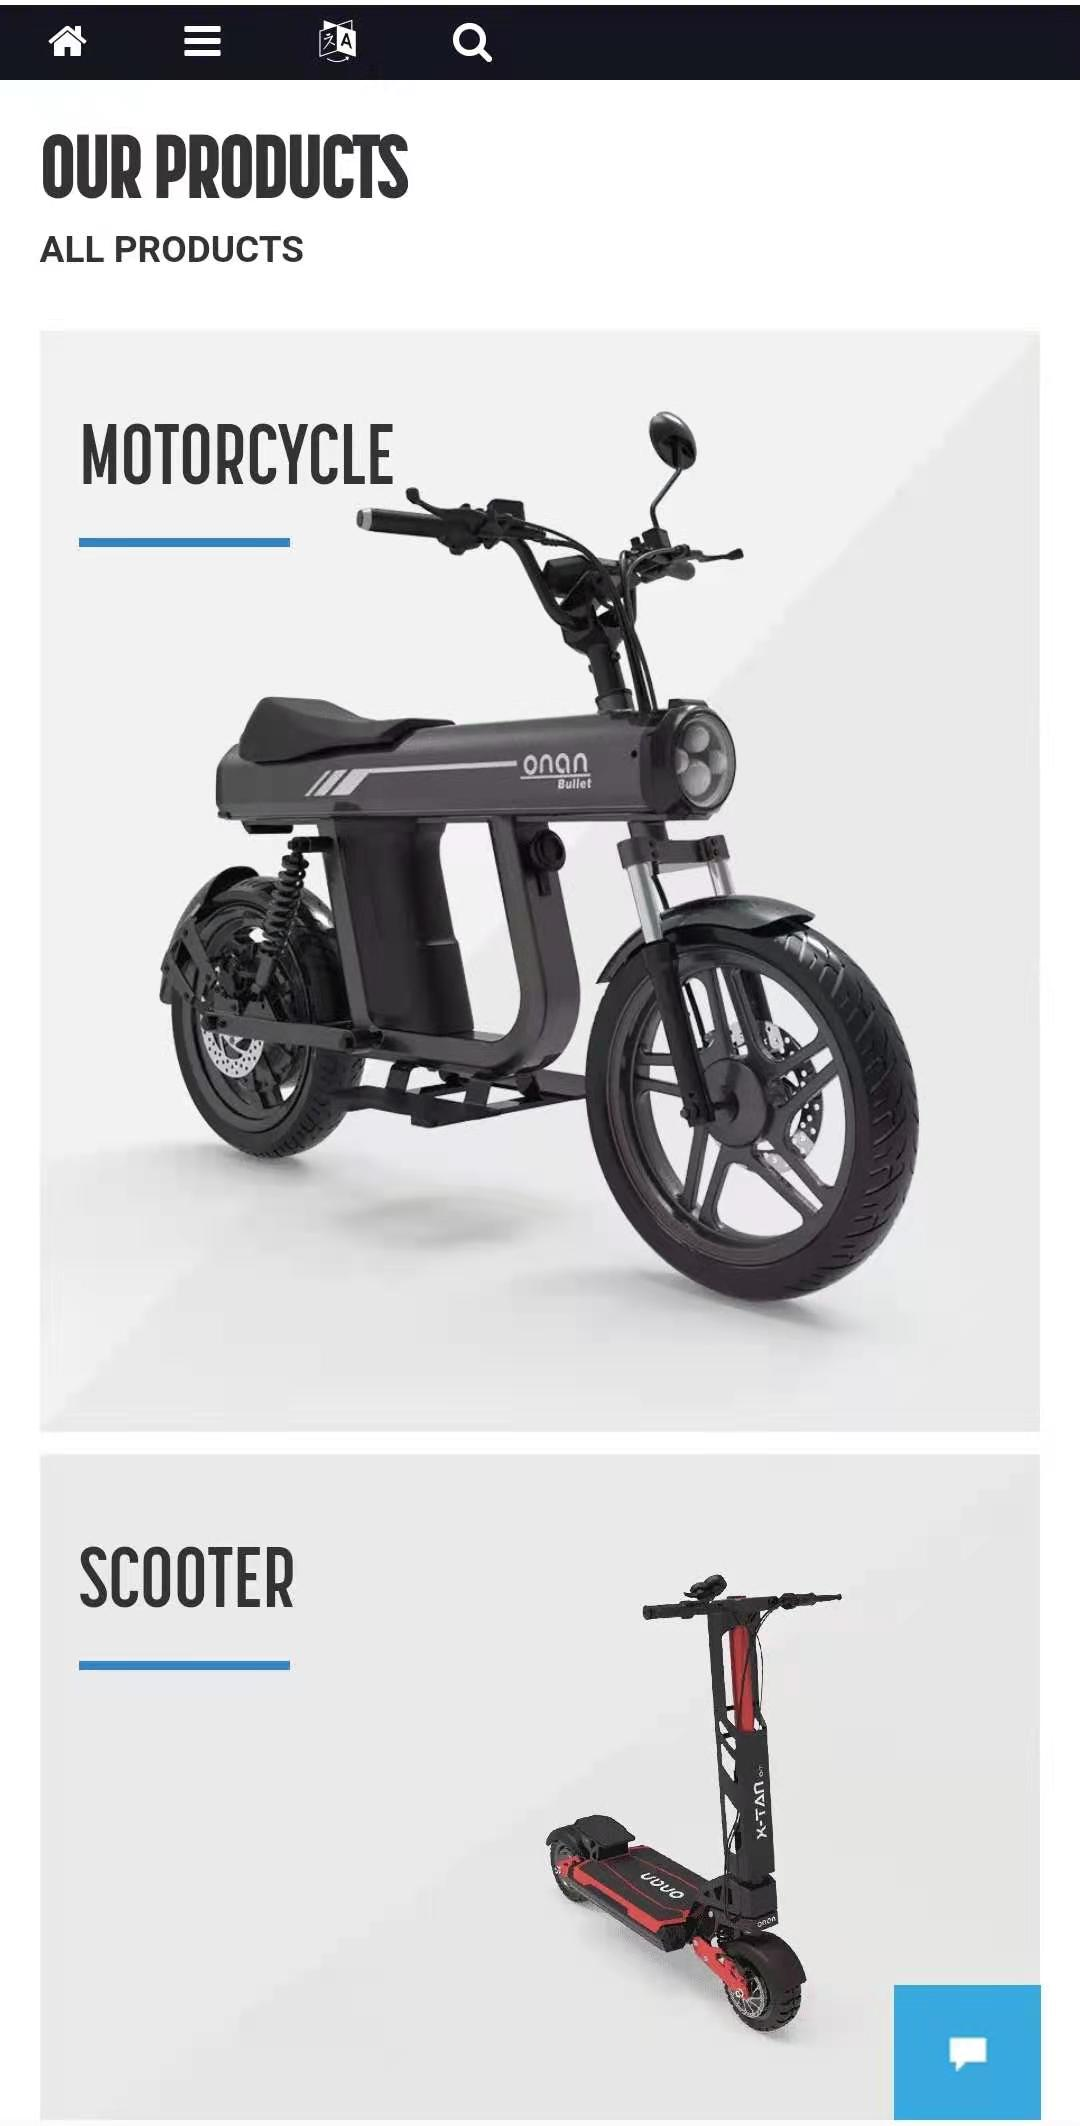 Five Useful Suggestions Before Buying an Electric Scooter